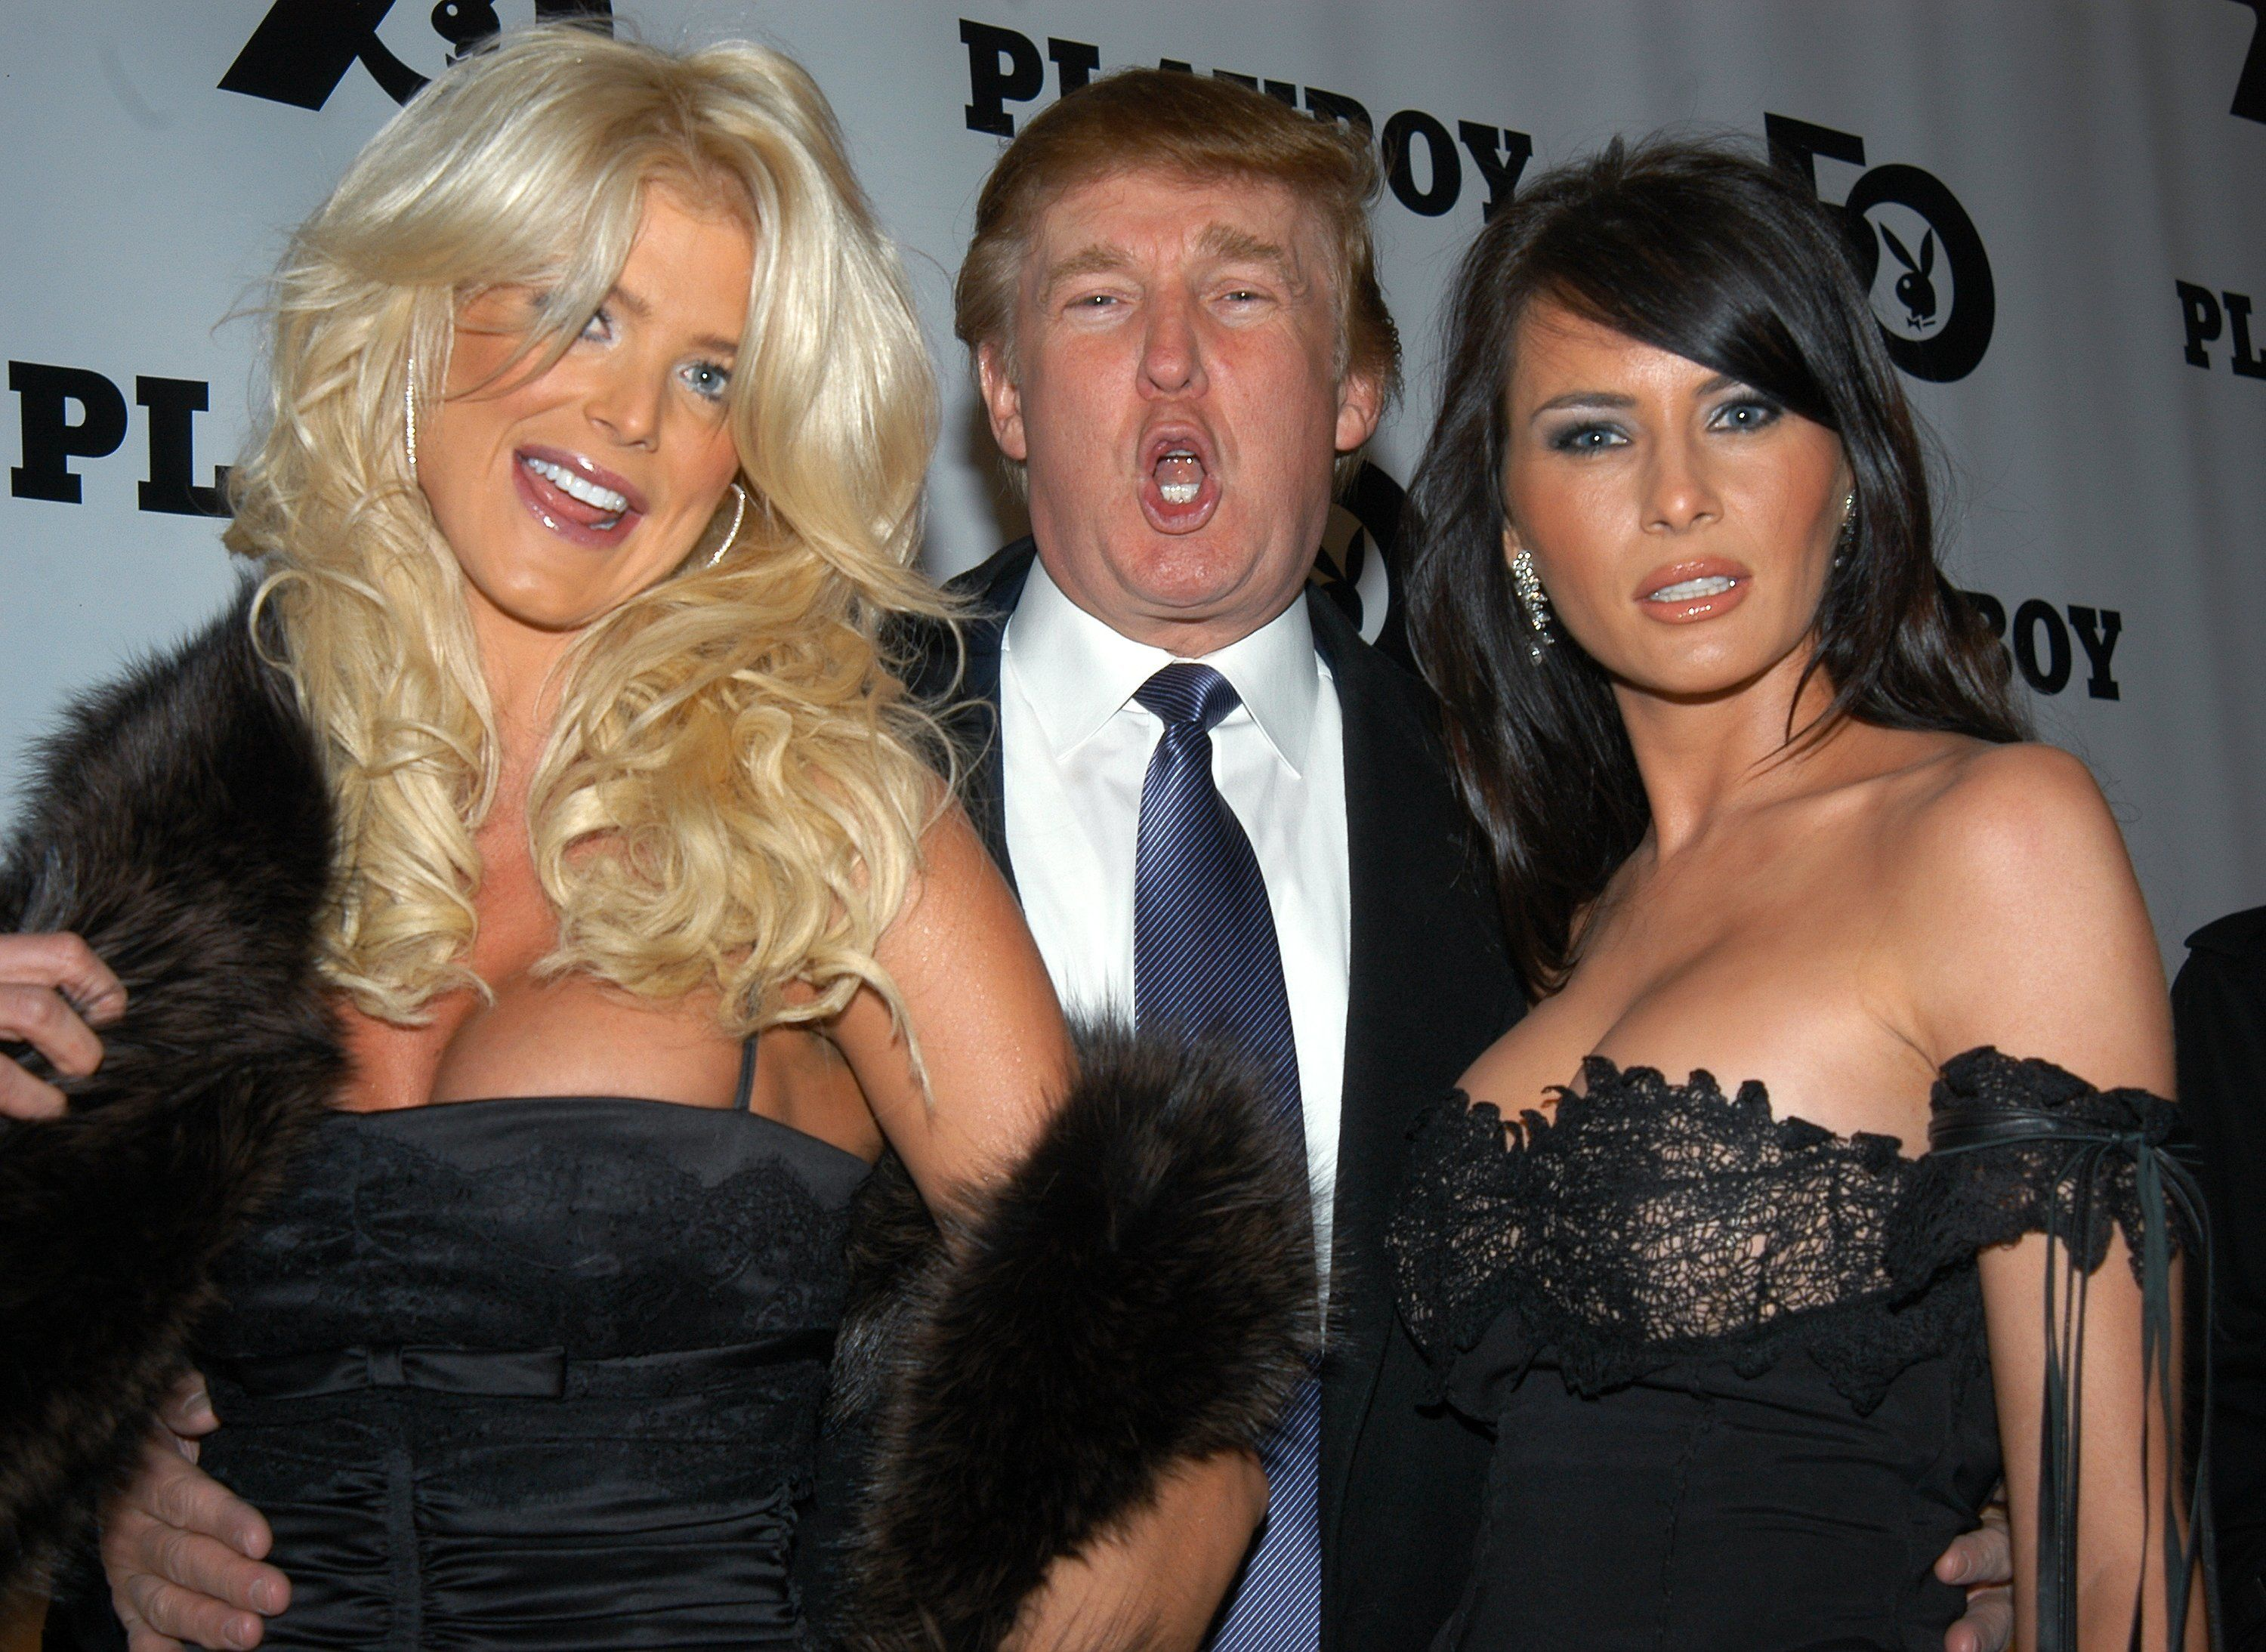 UNITED STATES - DECEMBER 05:  Donald Trump is flanked by Victoria Silvstedt, 1997 Playmate of the Year, and his girlfriend, Melania Knauss, at Playboy magazine's 50th anniversary celebration at the Lexington Ave. armory.  (Photo by Richard Corkery/NY Daily News Archive via Getty Images)